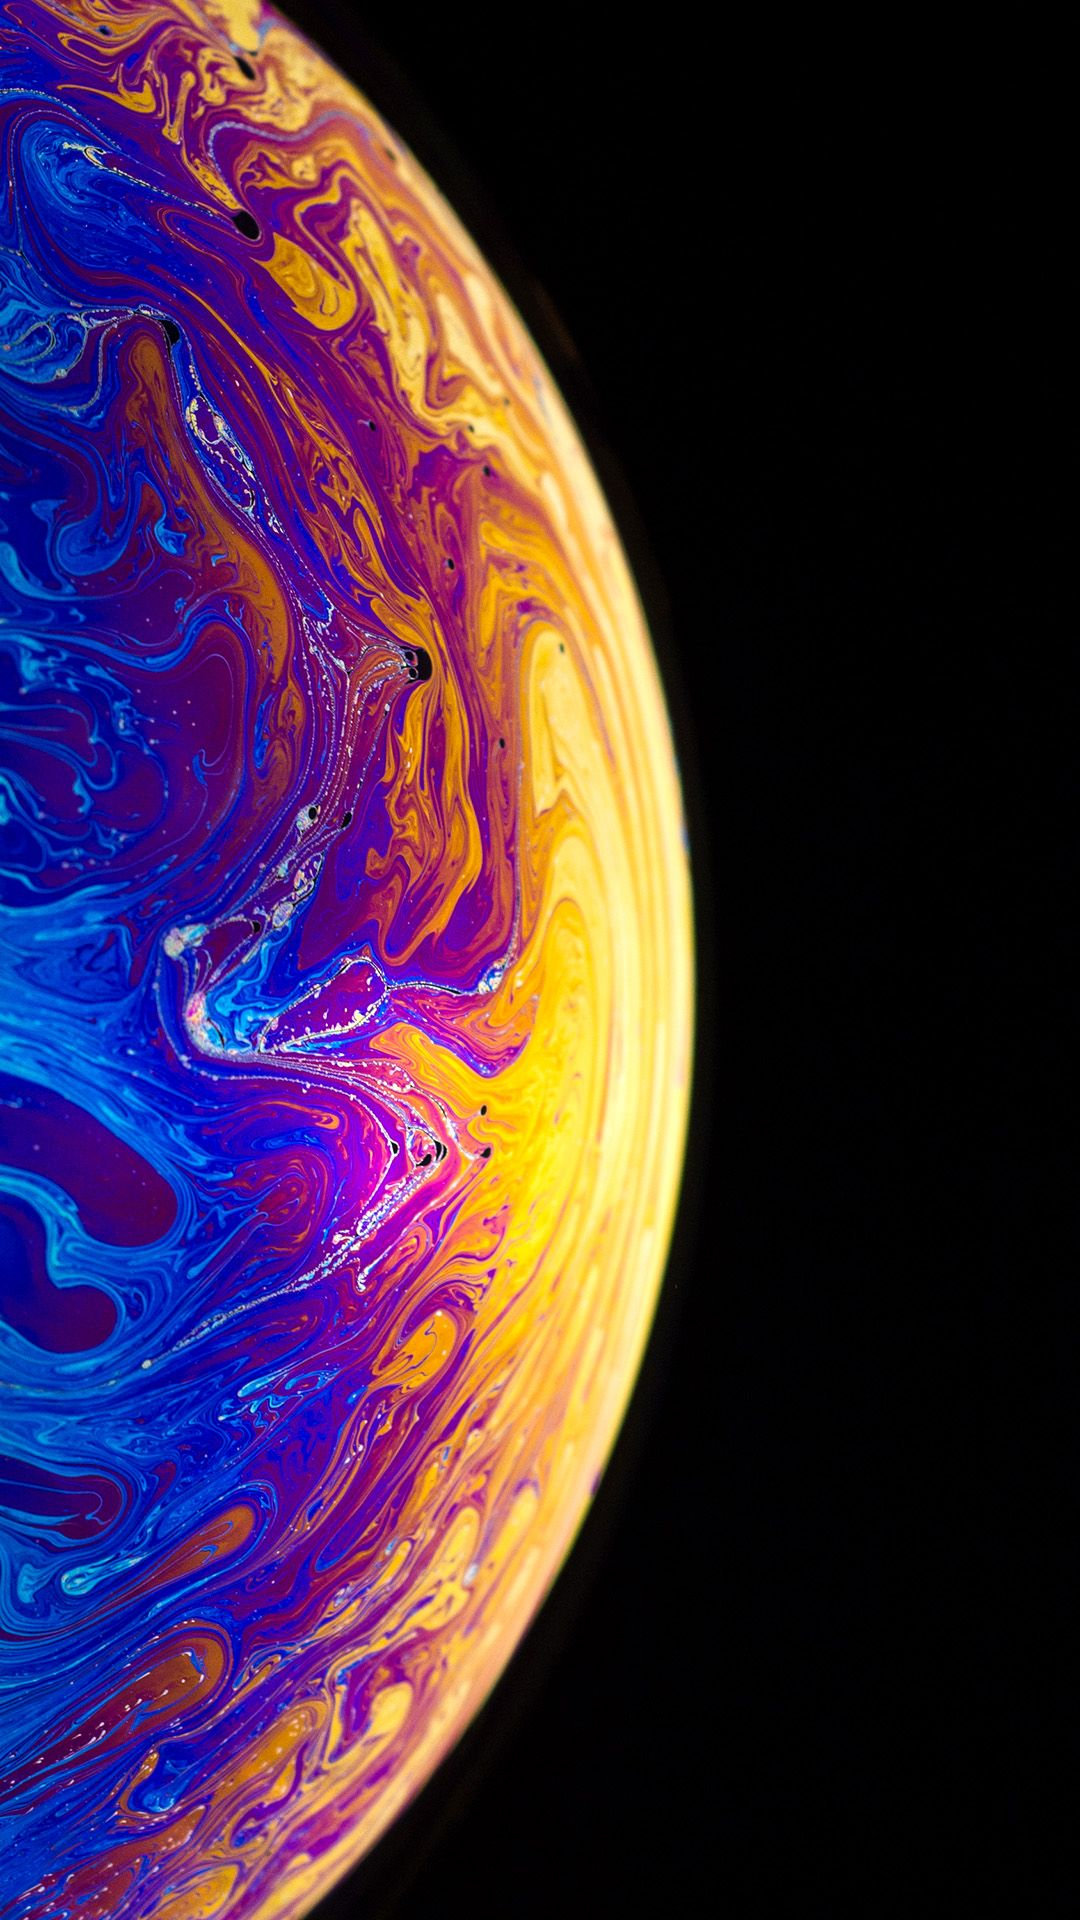 New Live Wallpapers for iPhone Xs! Live wallpaper